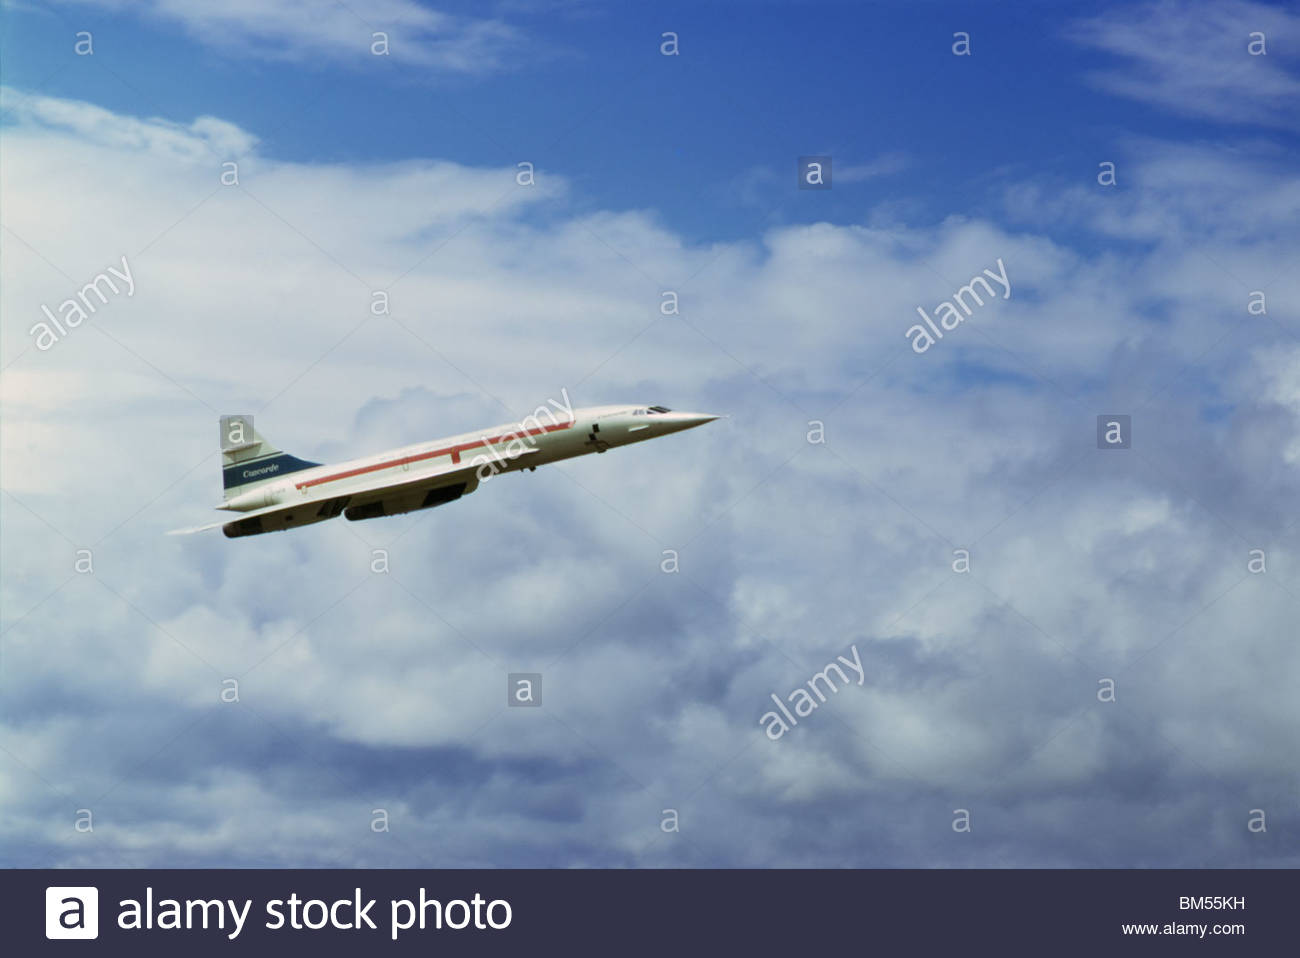 Concorde airplane 101 G-AXDN (a pre-production version before production of the airline version) in flight at the Stock Photo